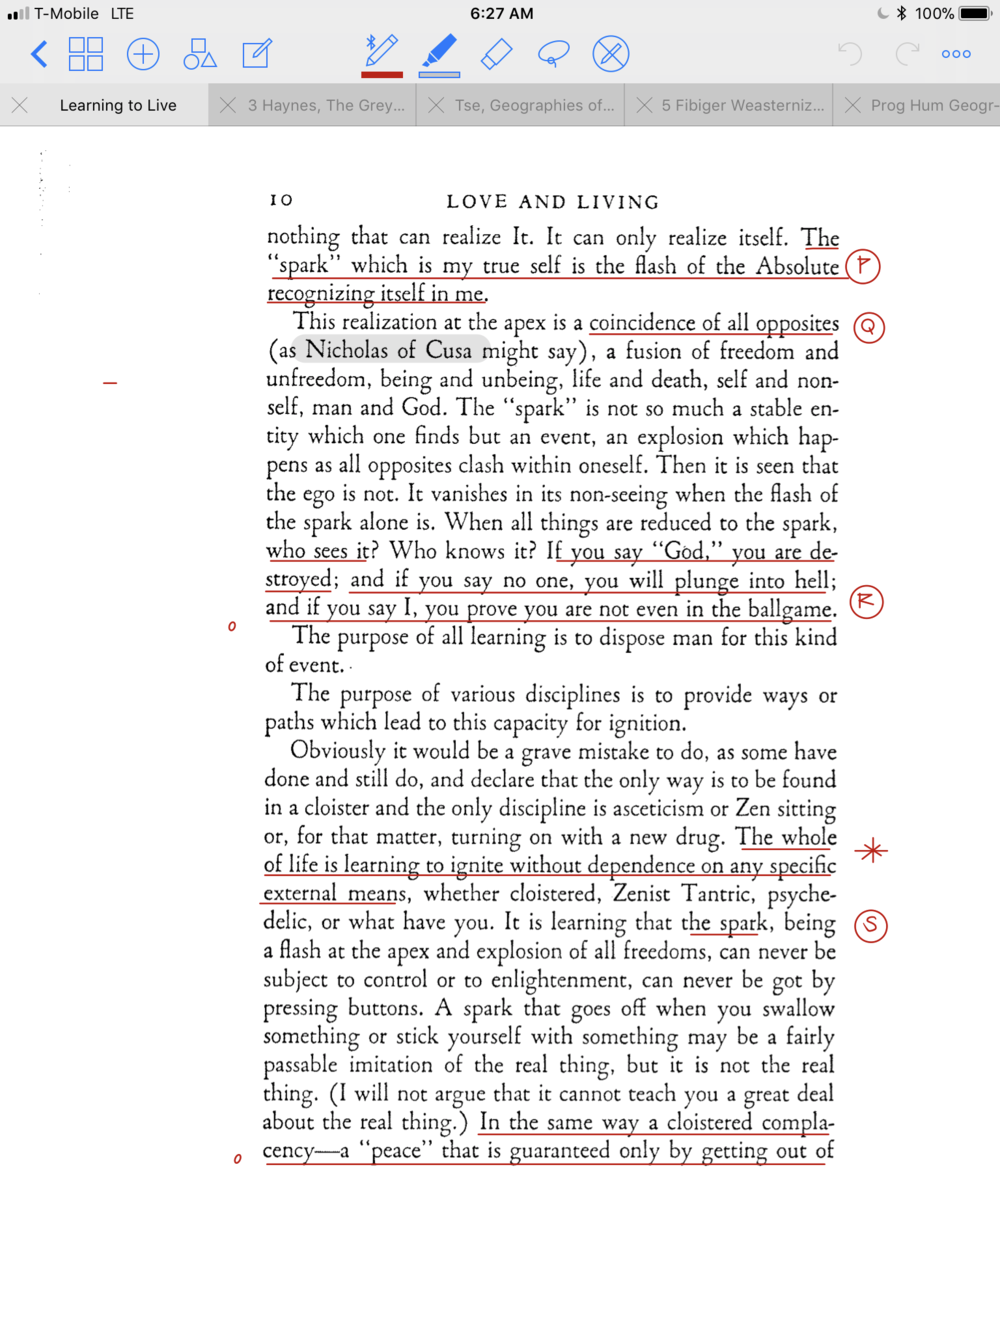 The above image is a page from Thomas Merton's book, Love and Living. I  would like to use it as a reference to demonstrate how I'm annotating my  academic ...